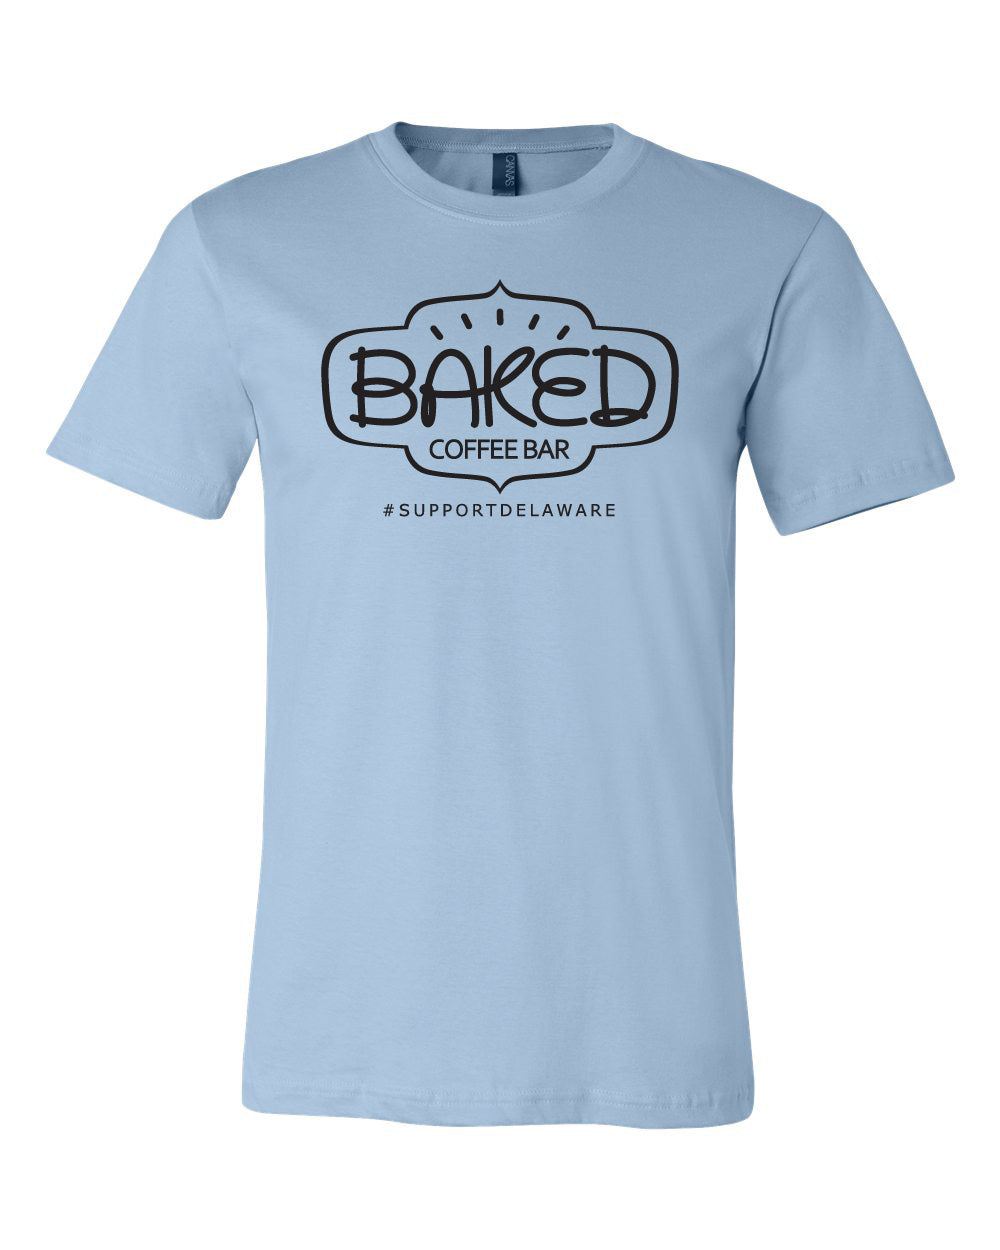 BAKED Coffee Bar